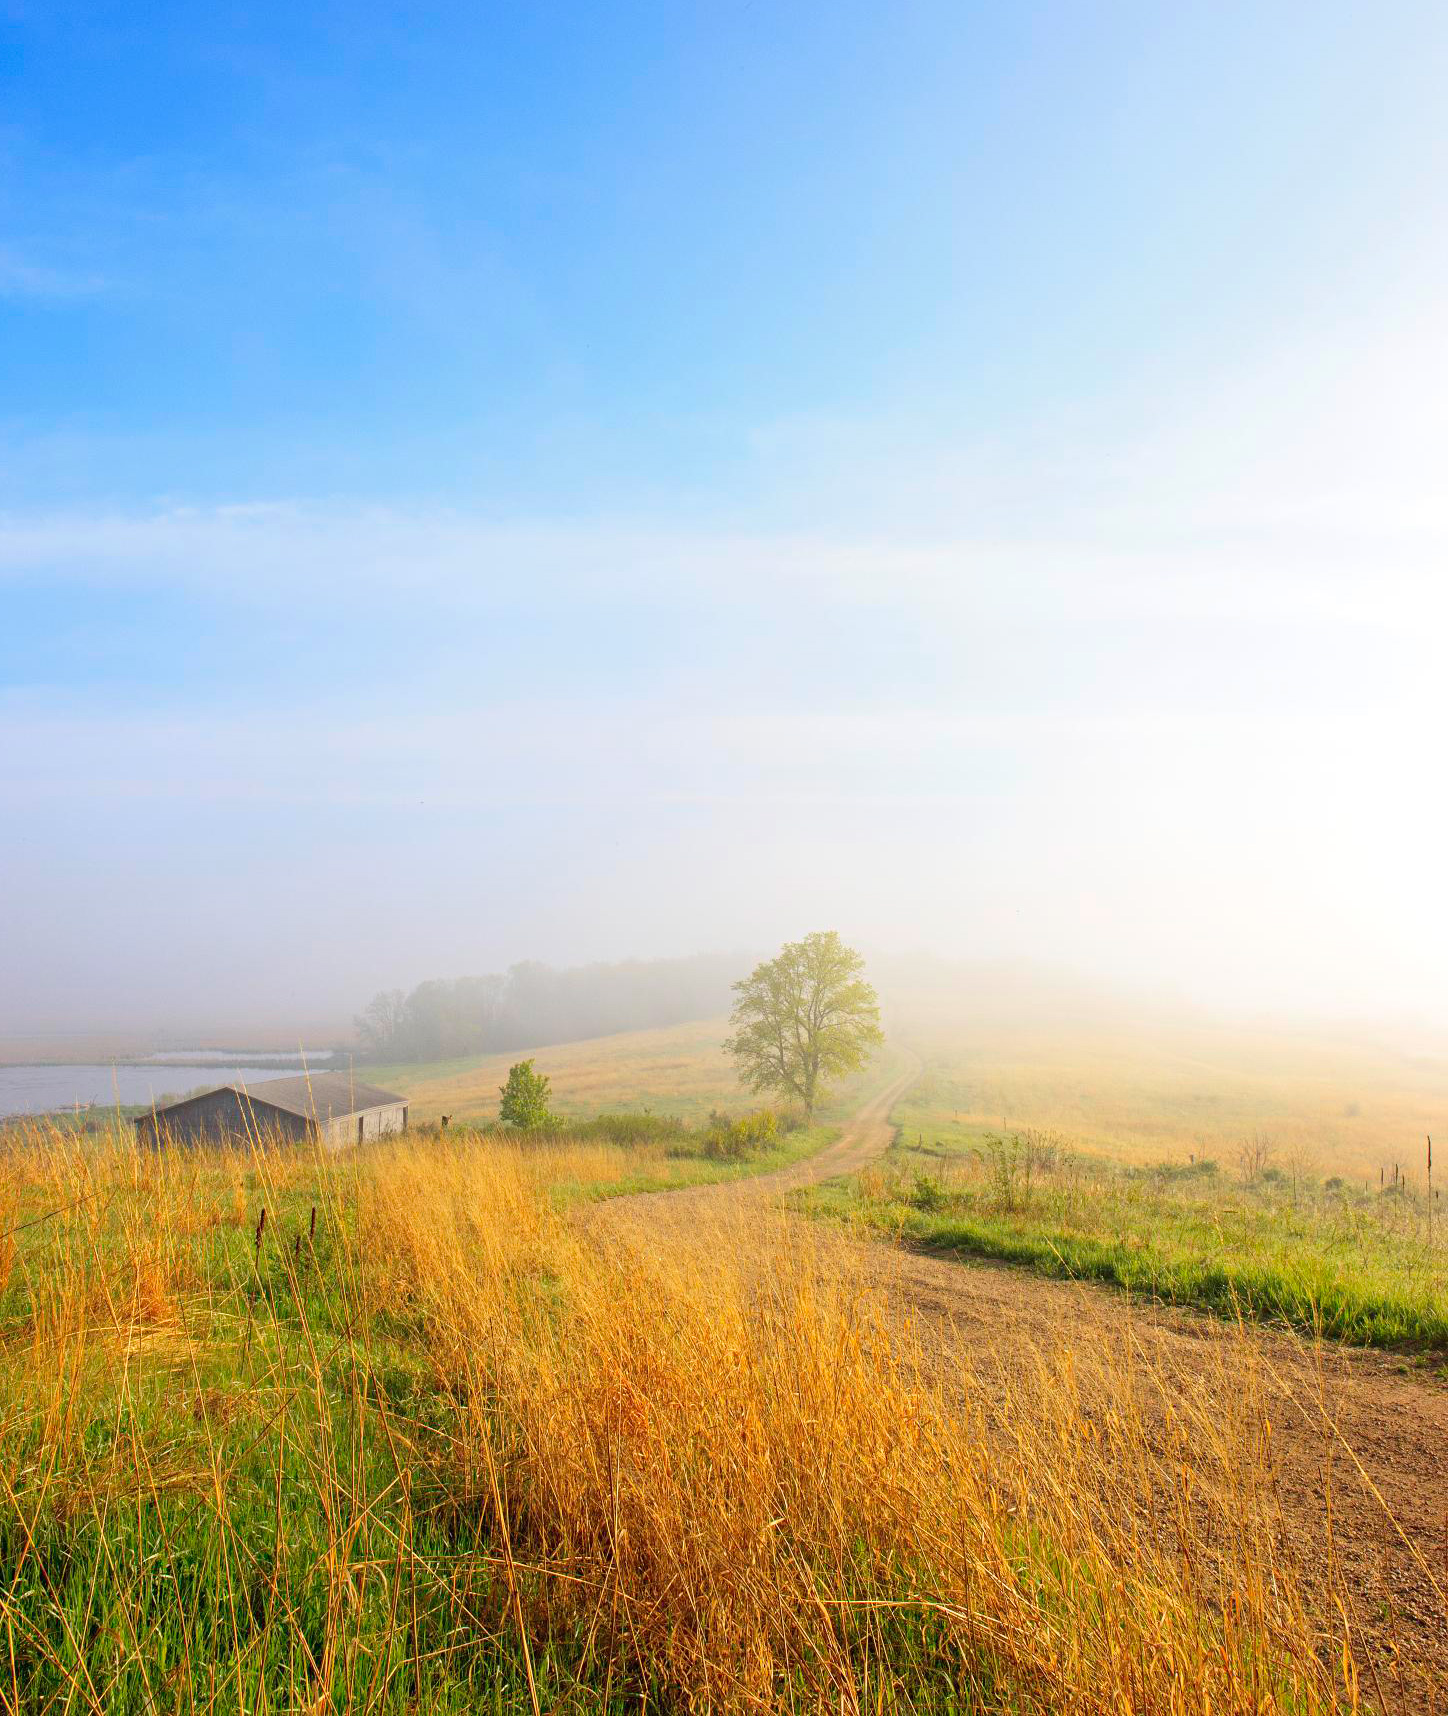 Experience misty mornings